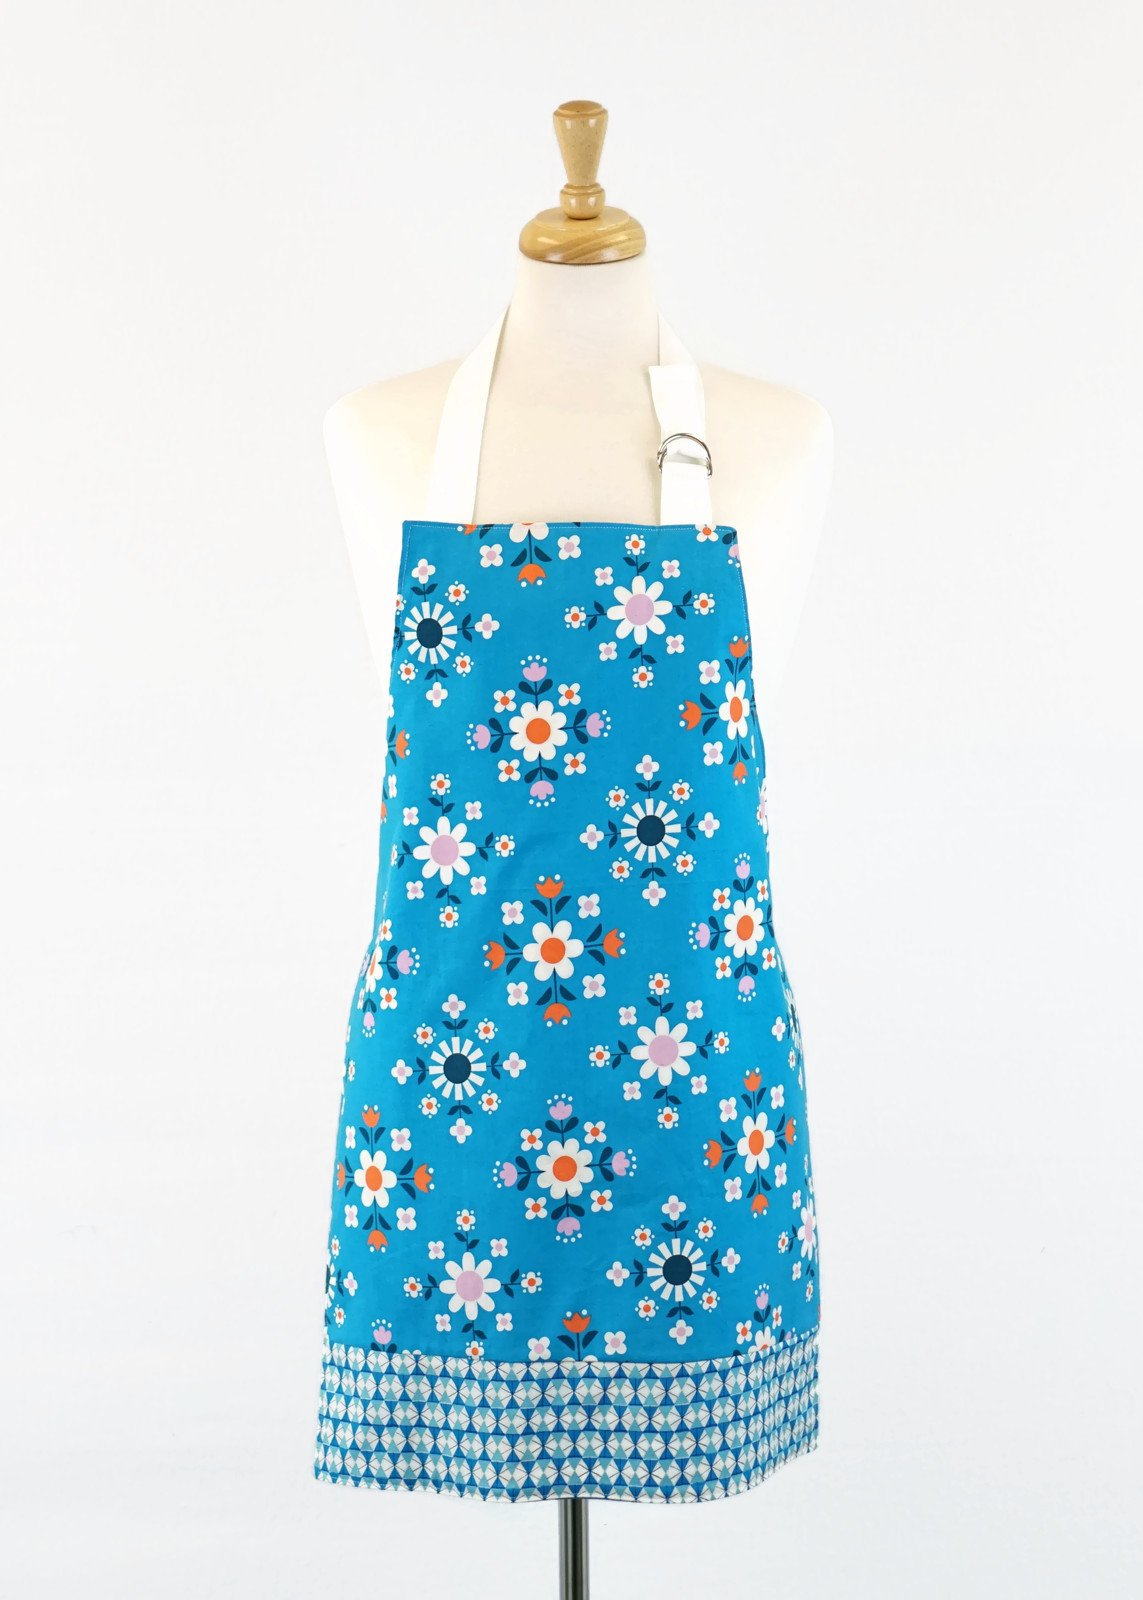 Women's Apron - Retro Blue Floral